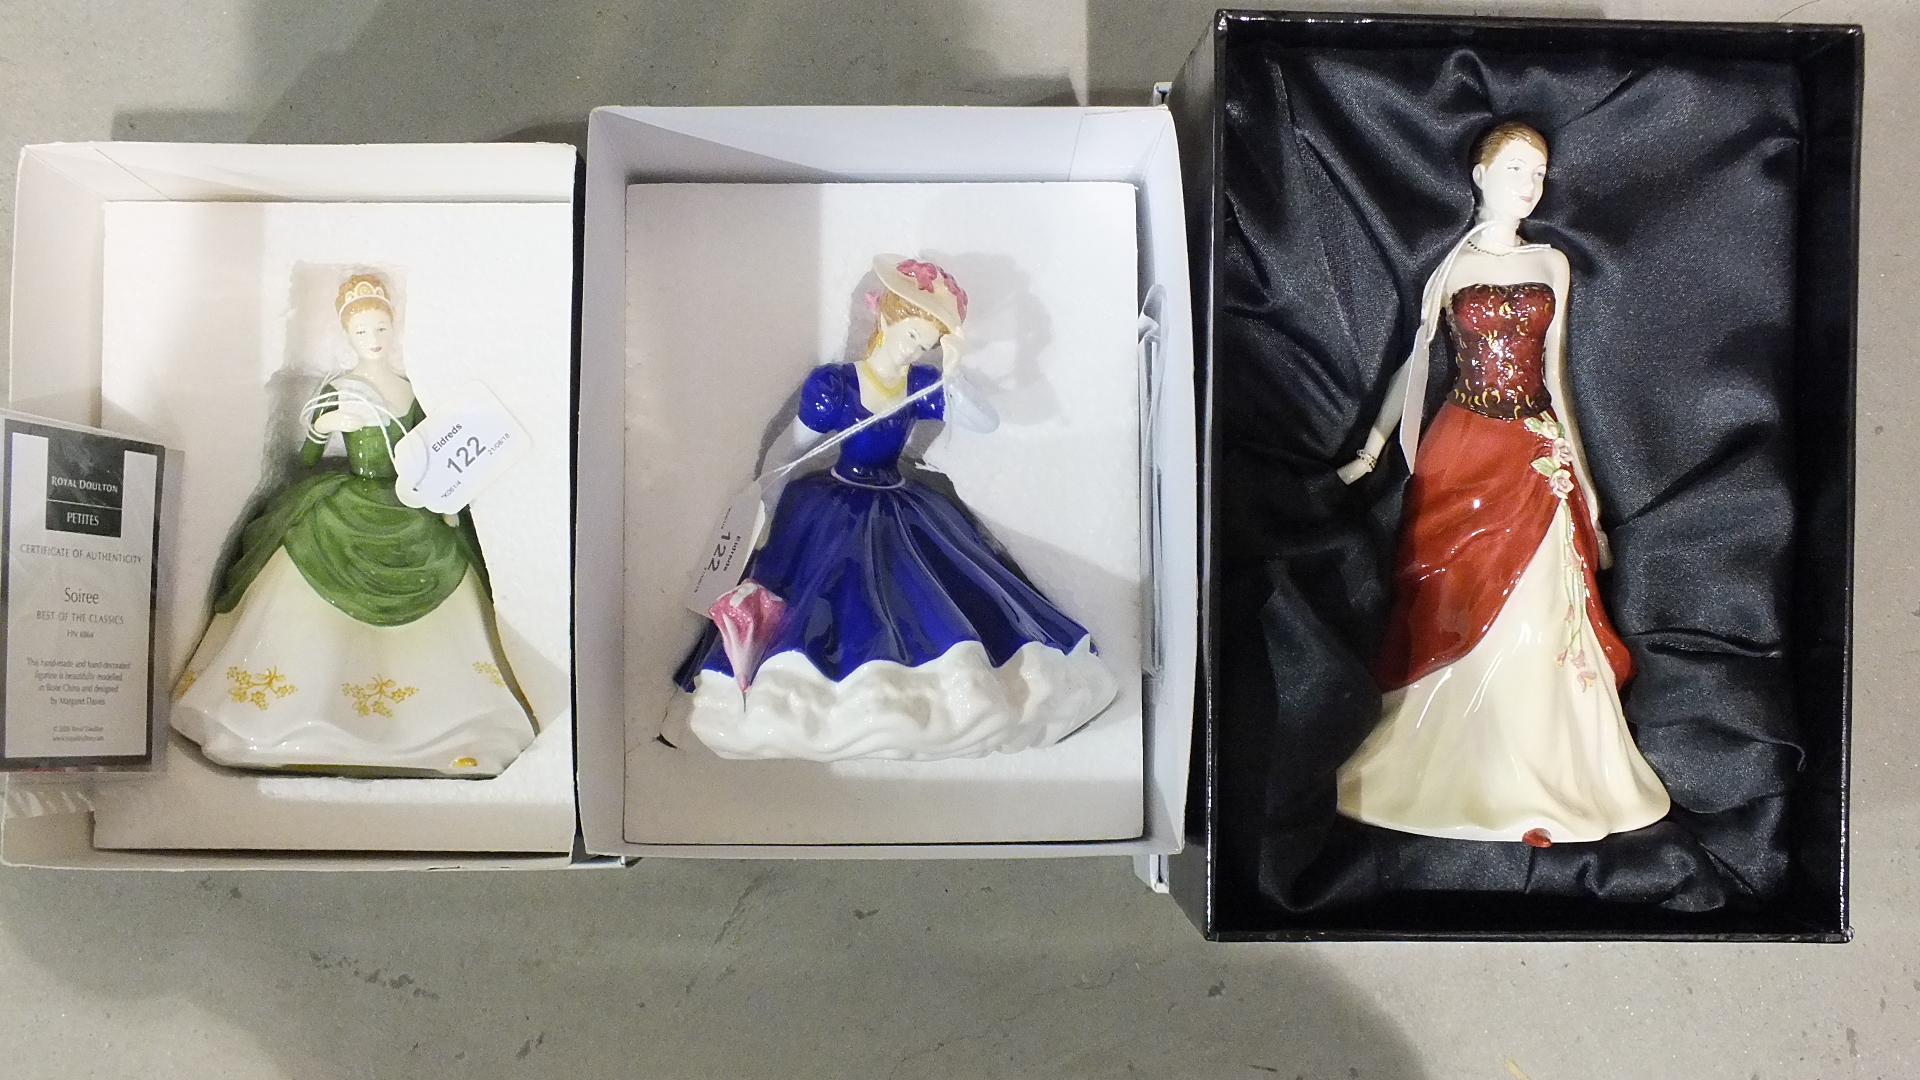 Lot 122 - Royal Doulton Pretty Ladies: Emily, HN4817, Soiree, HN4864 and Mary, HN4802, all boxed.